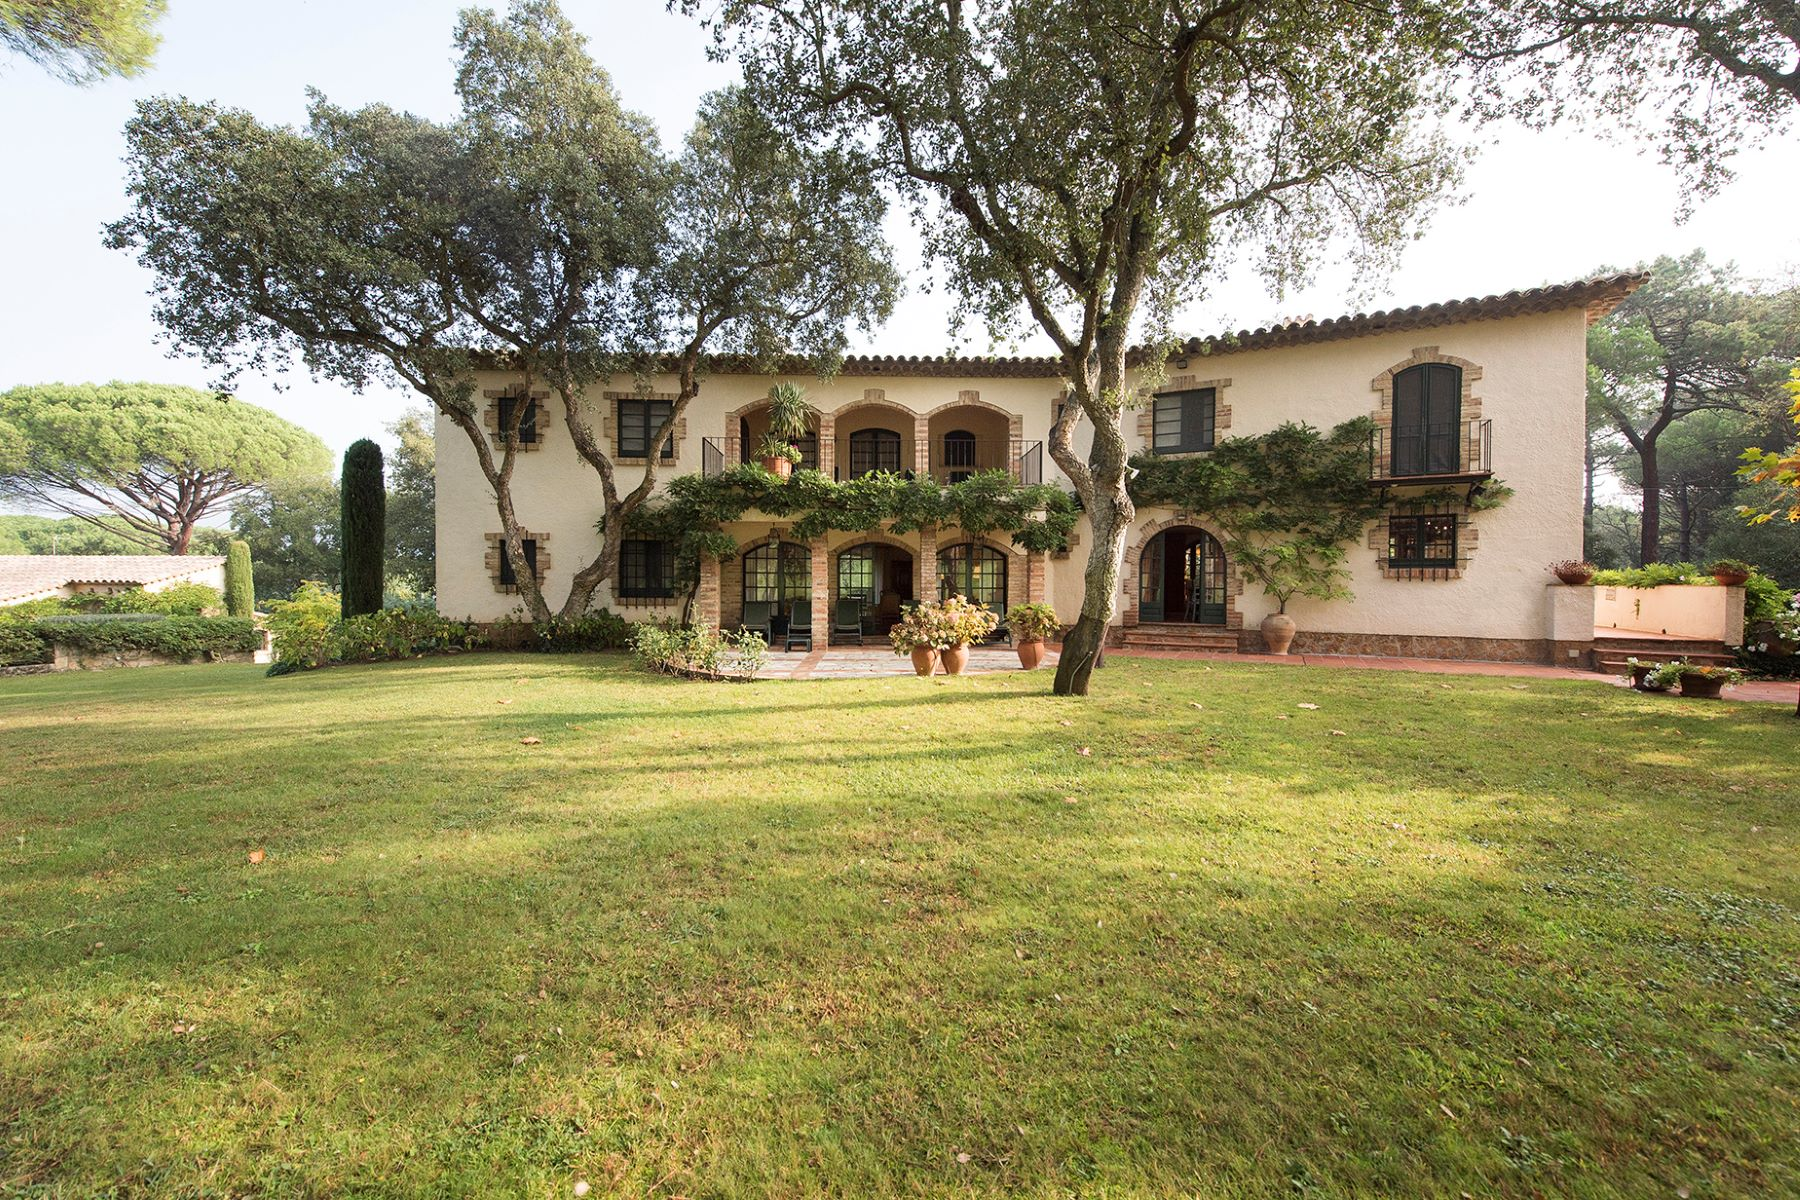 Single Family Home for Sale at Cosy house in quiet and pleasant surroundings Santa Cristina D Aro, Costa Brava, 17246 Spain